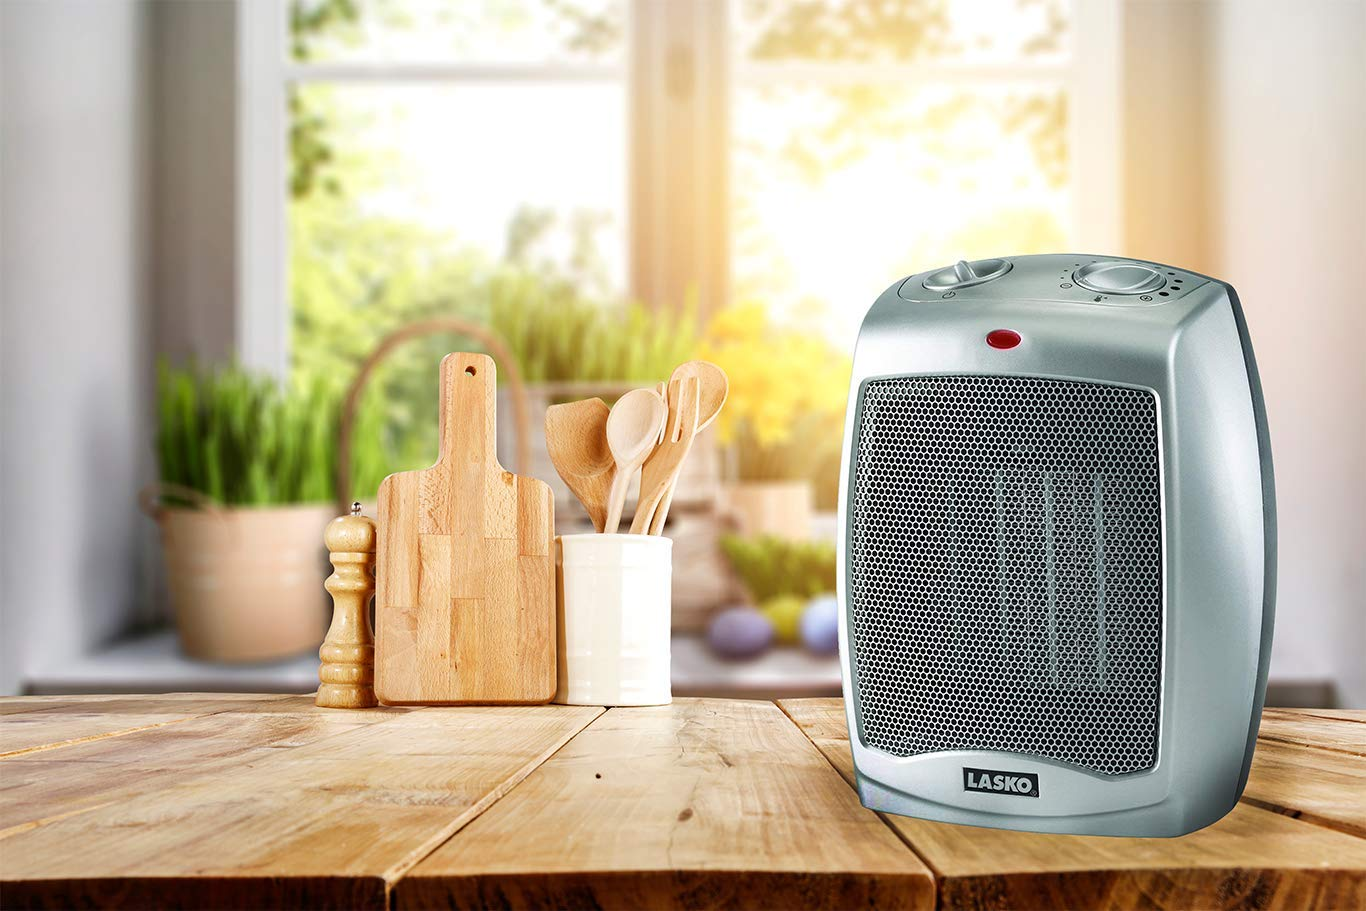 Lasko Electric Ceramic Heater.